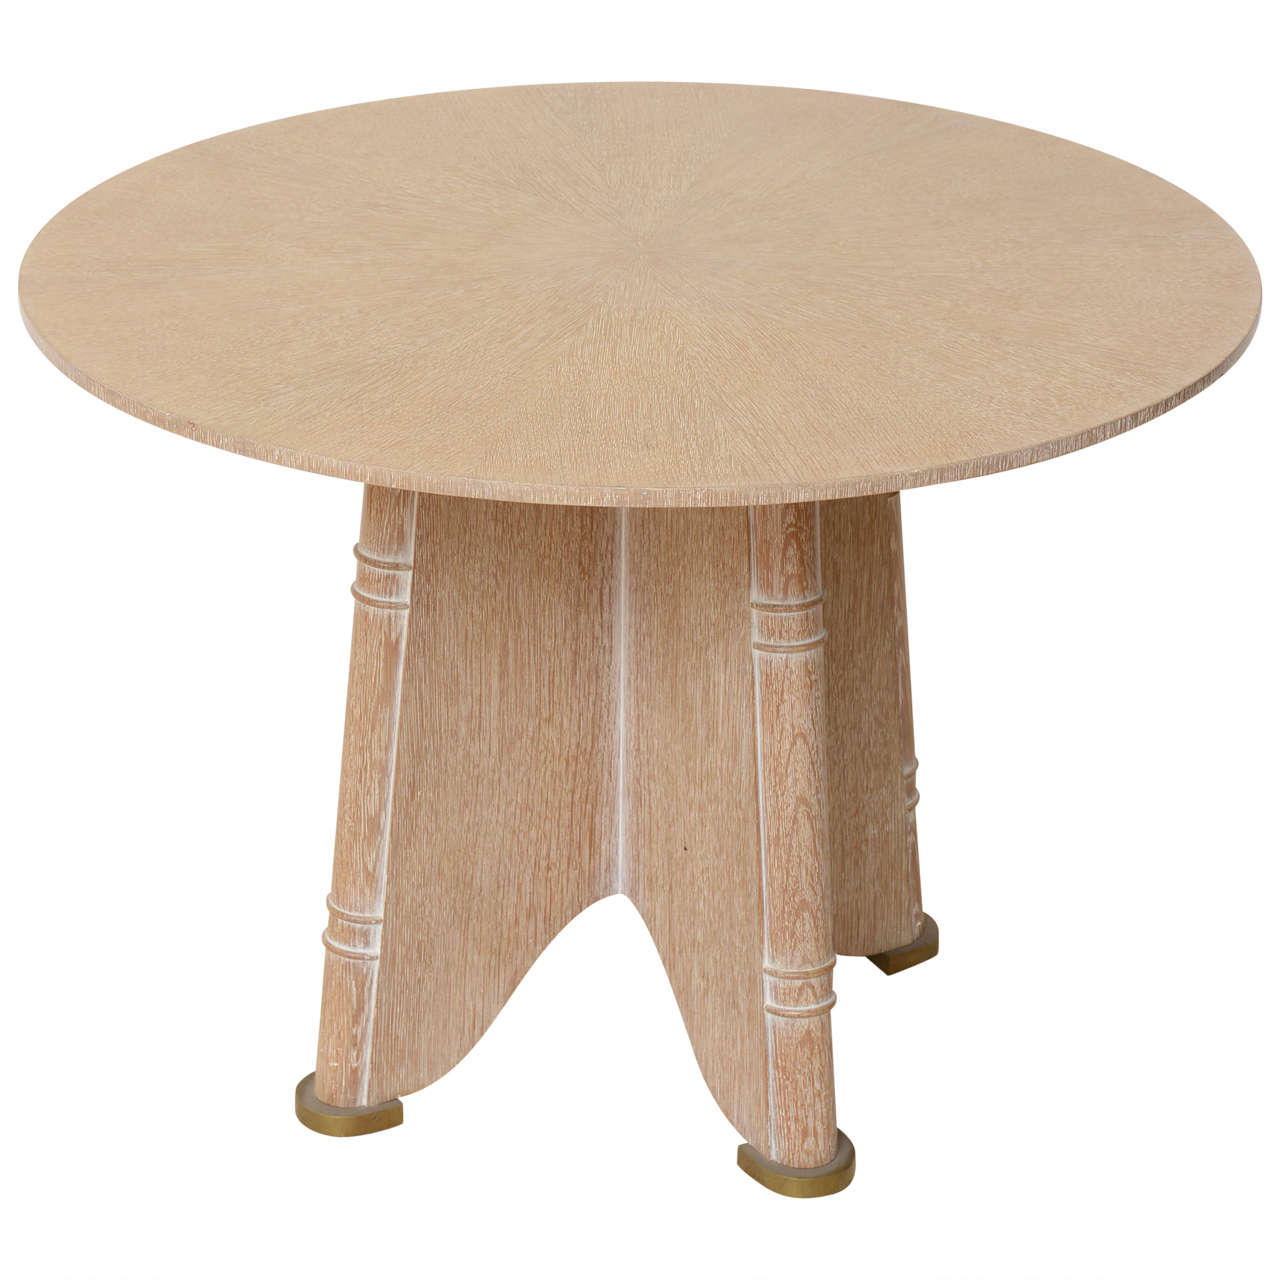 fine french cerused oak gueridon table by jules leleu for sale at 1stdibs. Black Bedroom Furniture Sets. Home Design Ideas